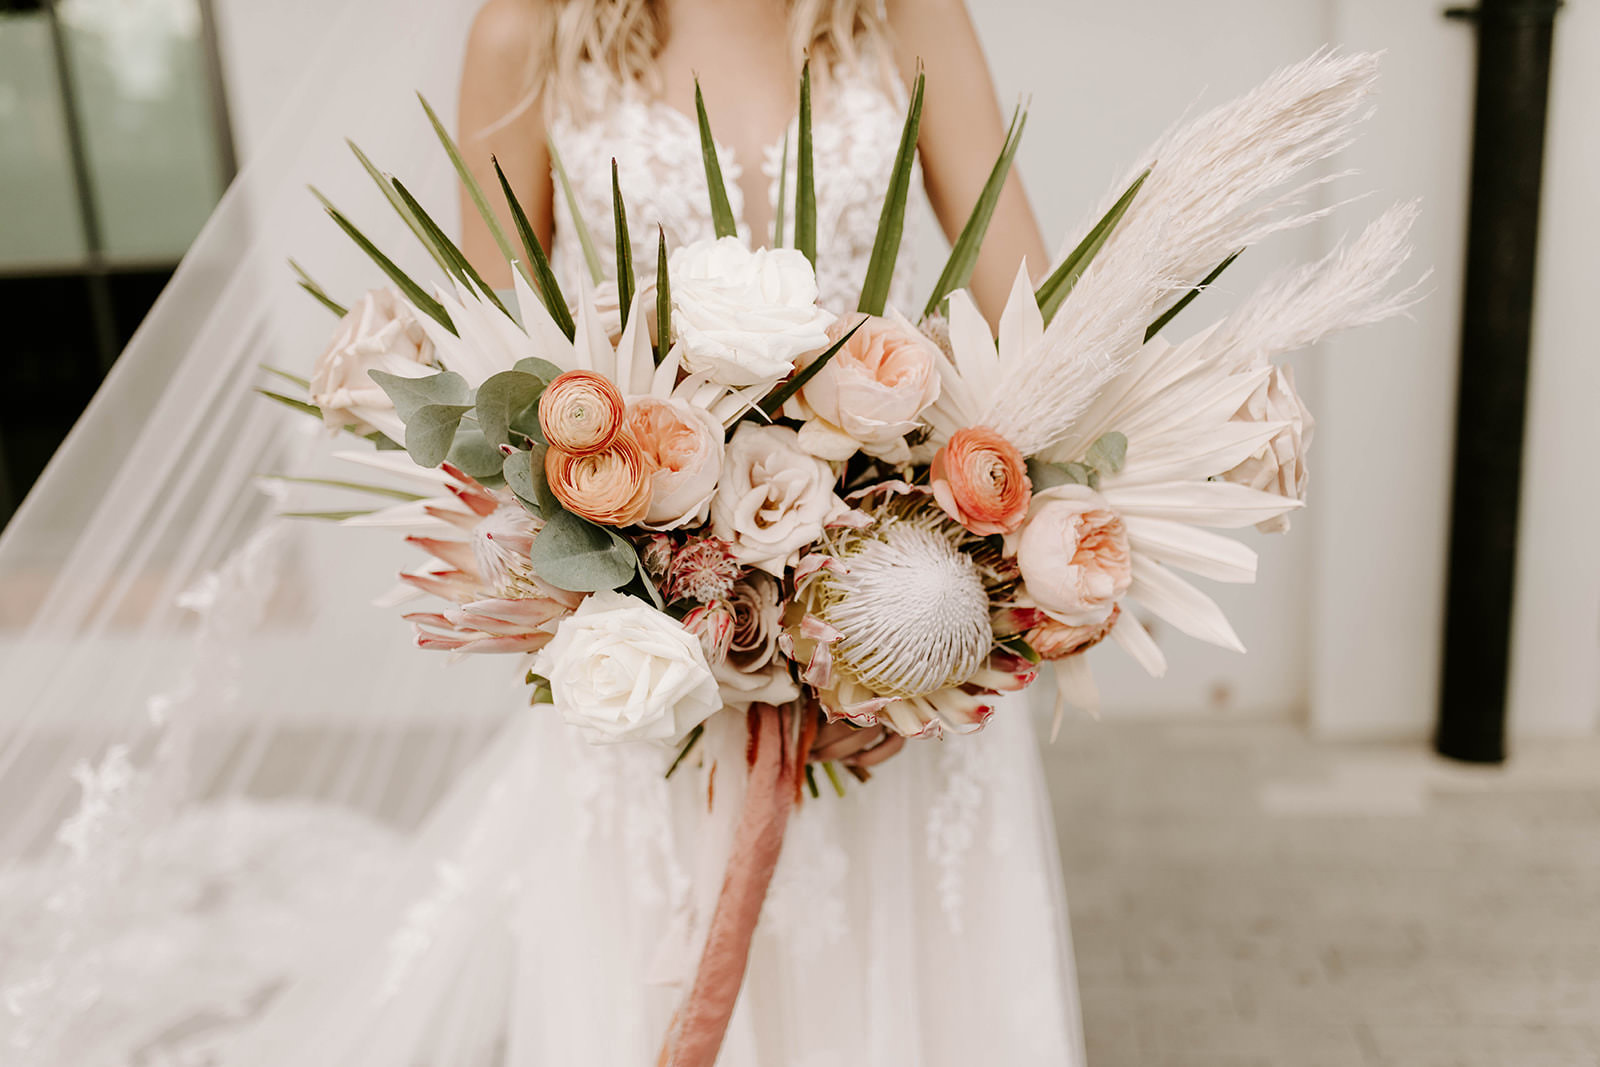 INSTAGRAM Boho Bride Holding Whimsical Palm Fronds, Eucalyptus, White Roses, Burnt Orange and Blush Pink Peonies, King Proteas and White Feathers Floral Bouquet   Tampa Bay Wedding Planner Coastal Coordinating